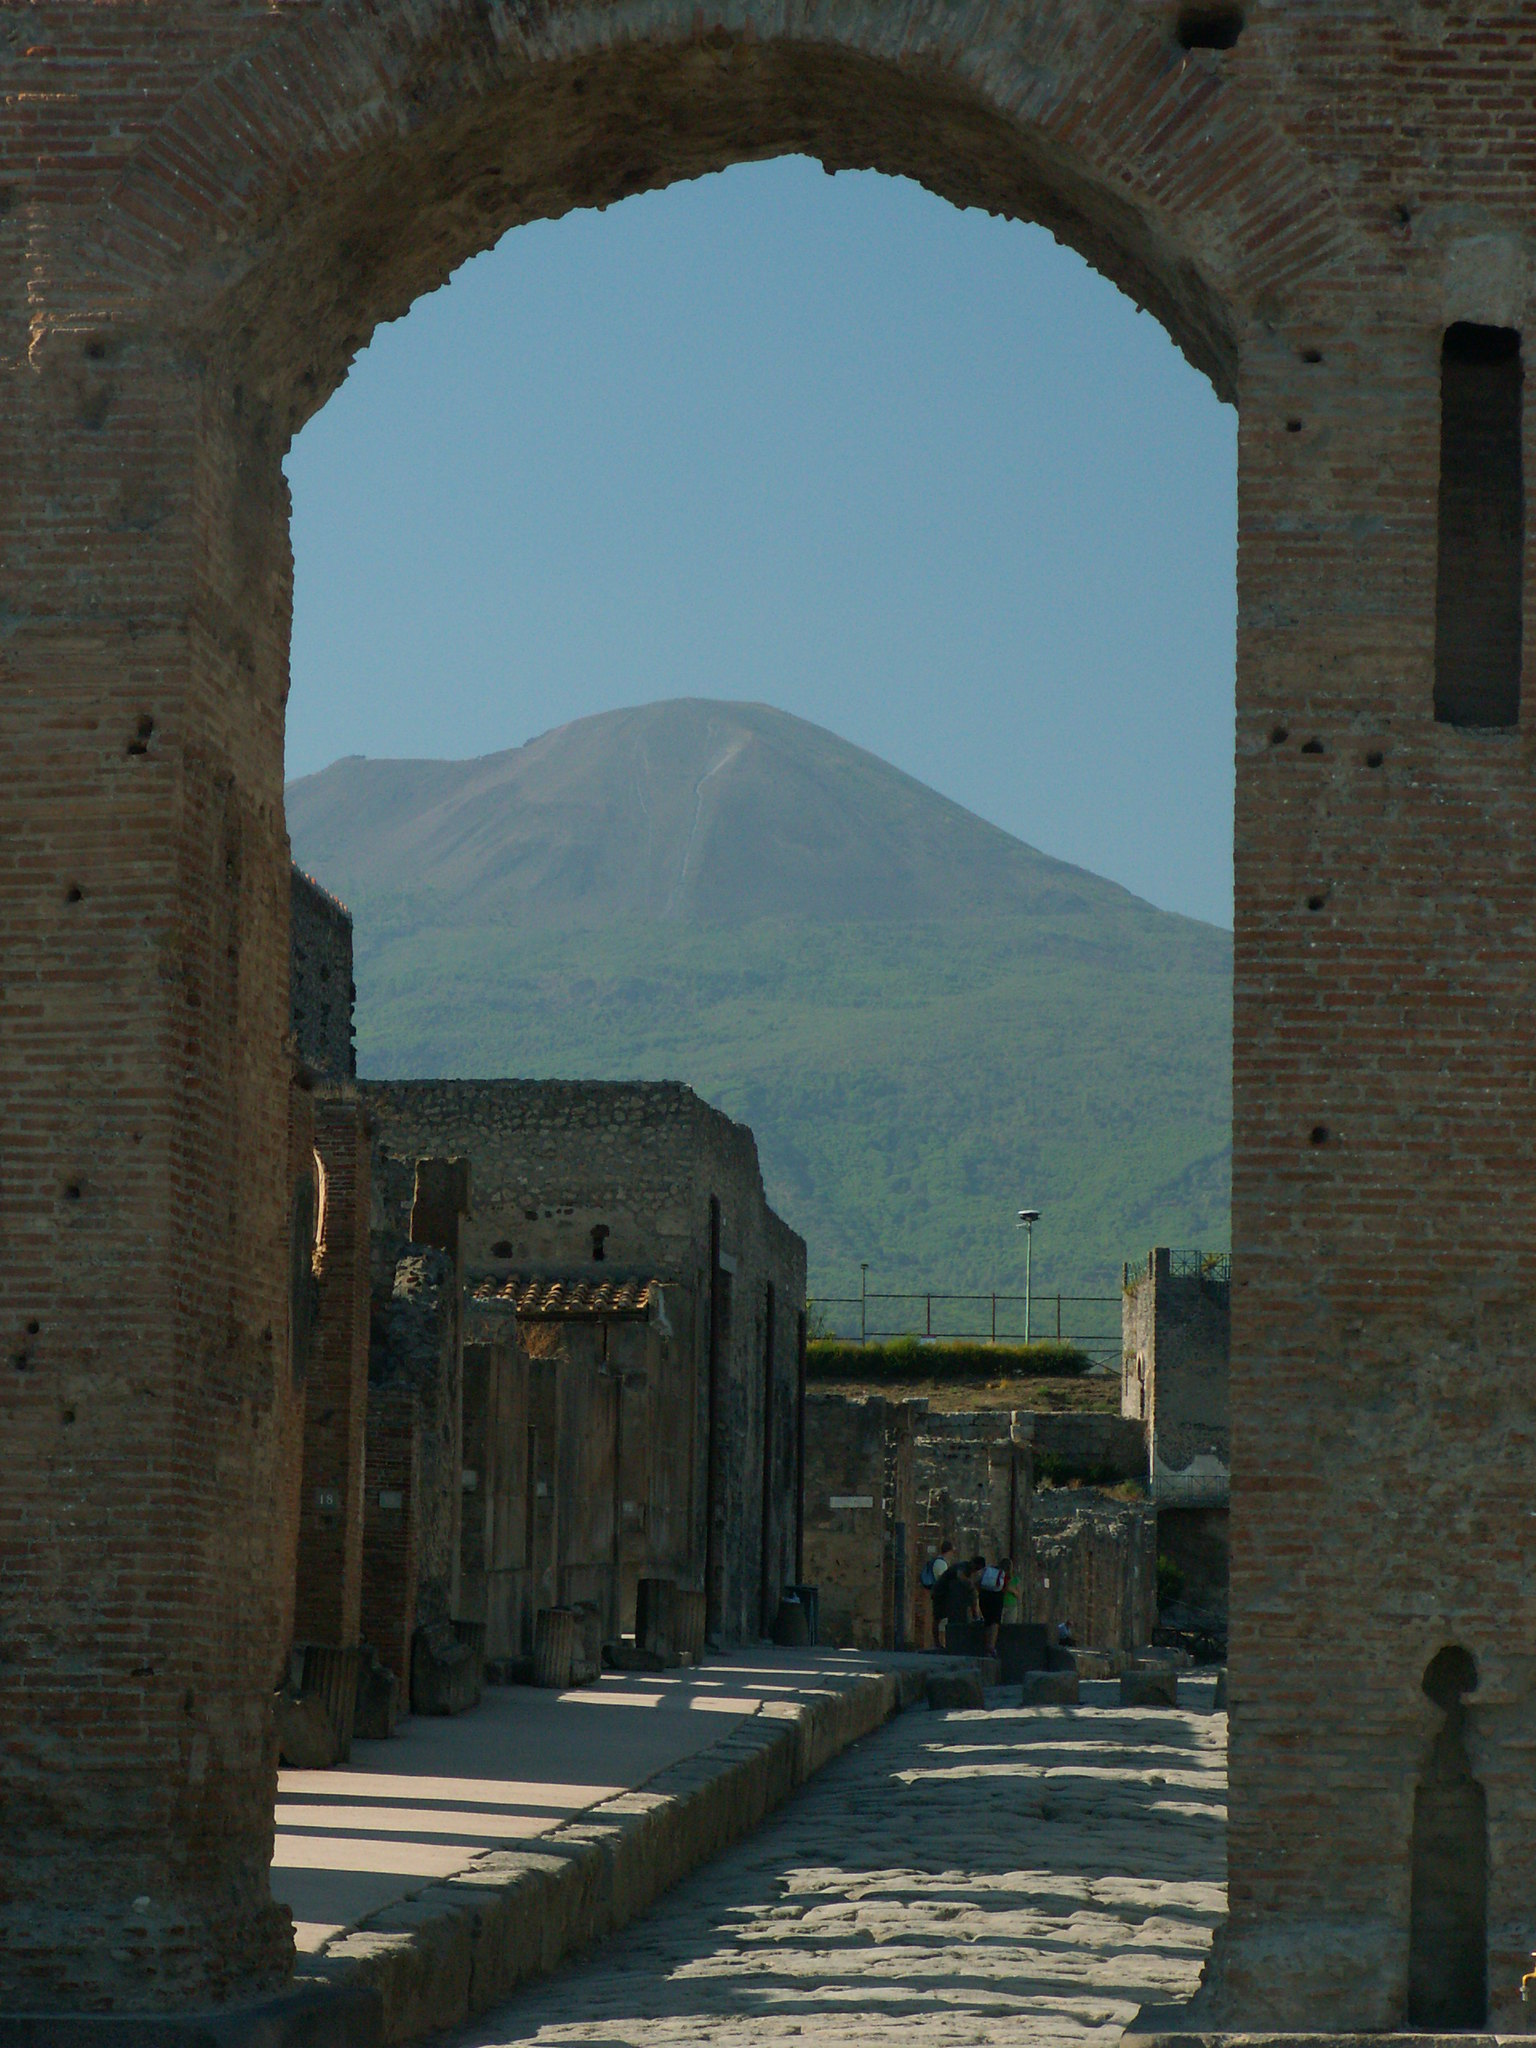 Out of the ashes: Catherine Baker discusses life in a non-elite Pompeiian neighborhood